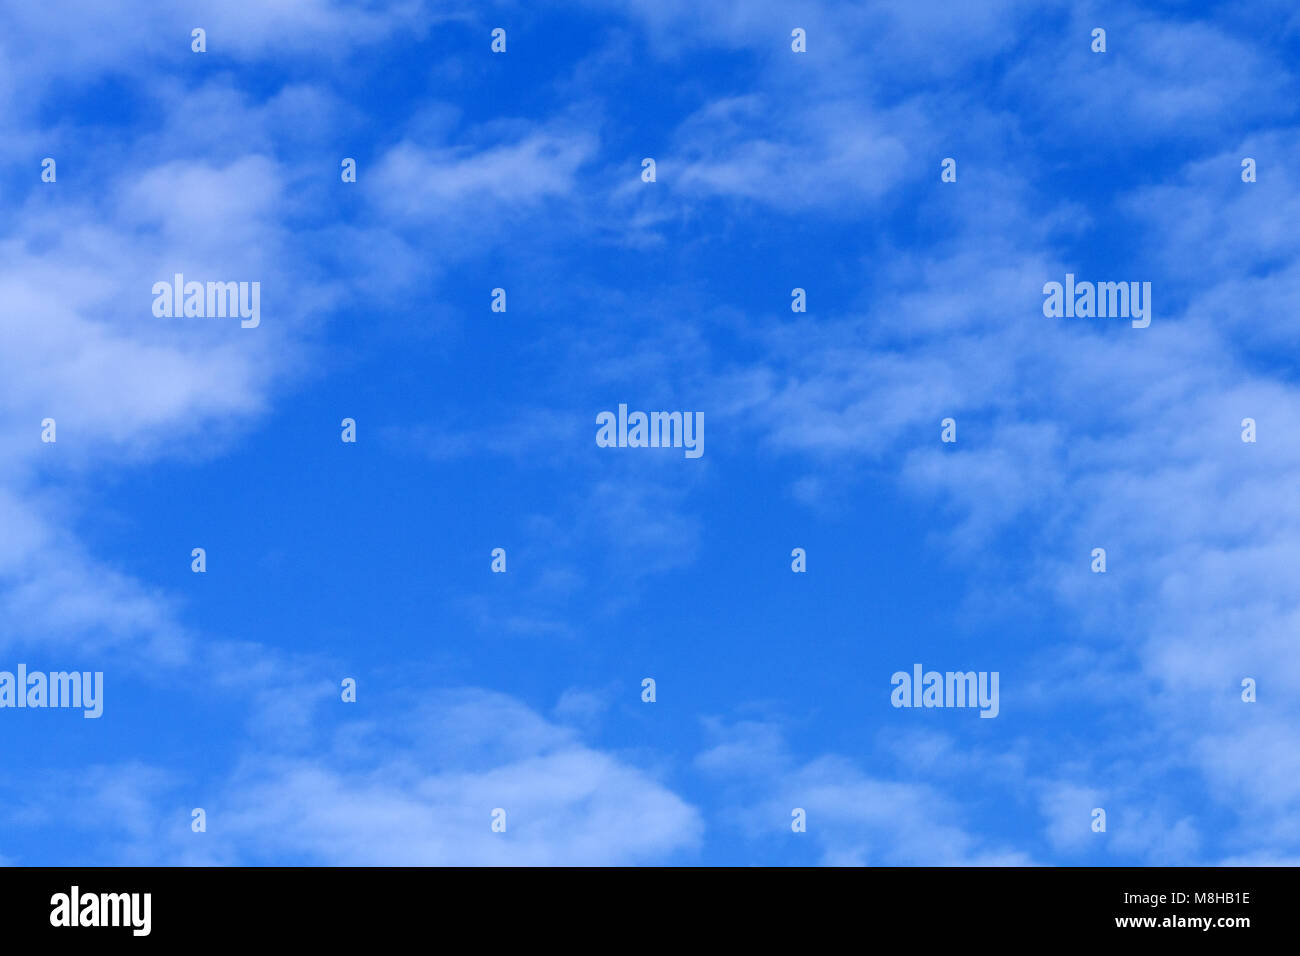 High resolution photo of cumulus clouds against a blur sky. Great background image for composites - Stock Image